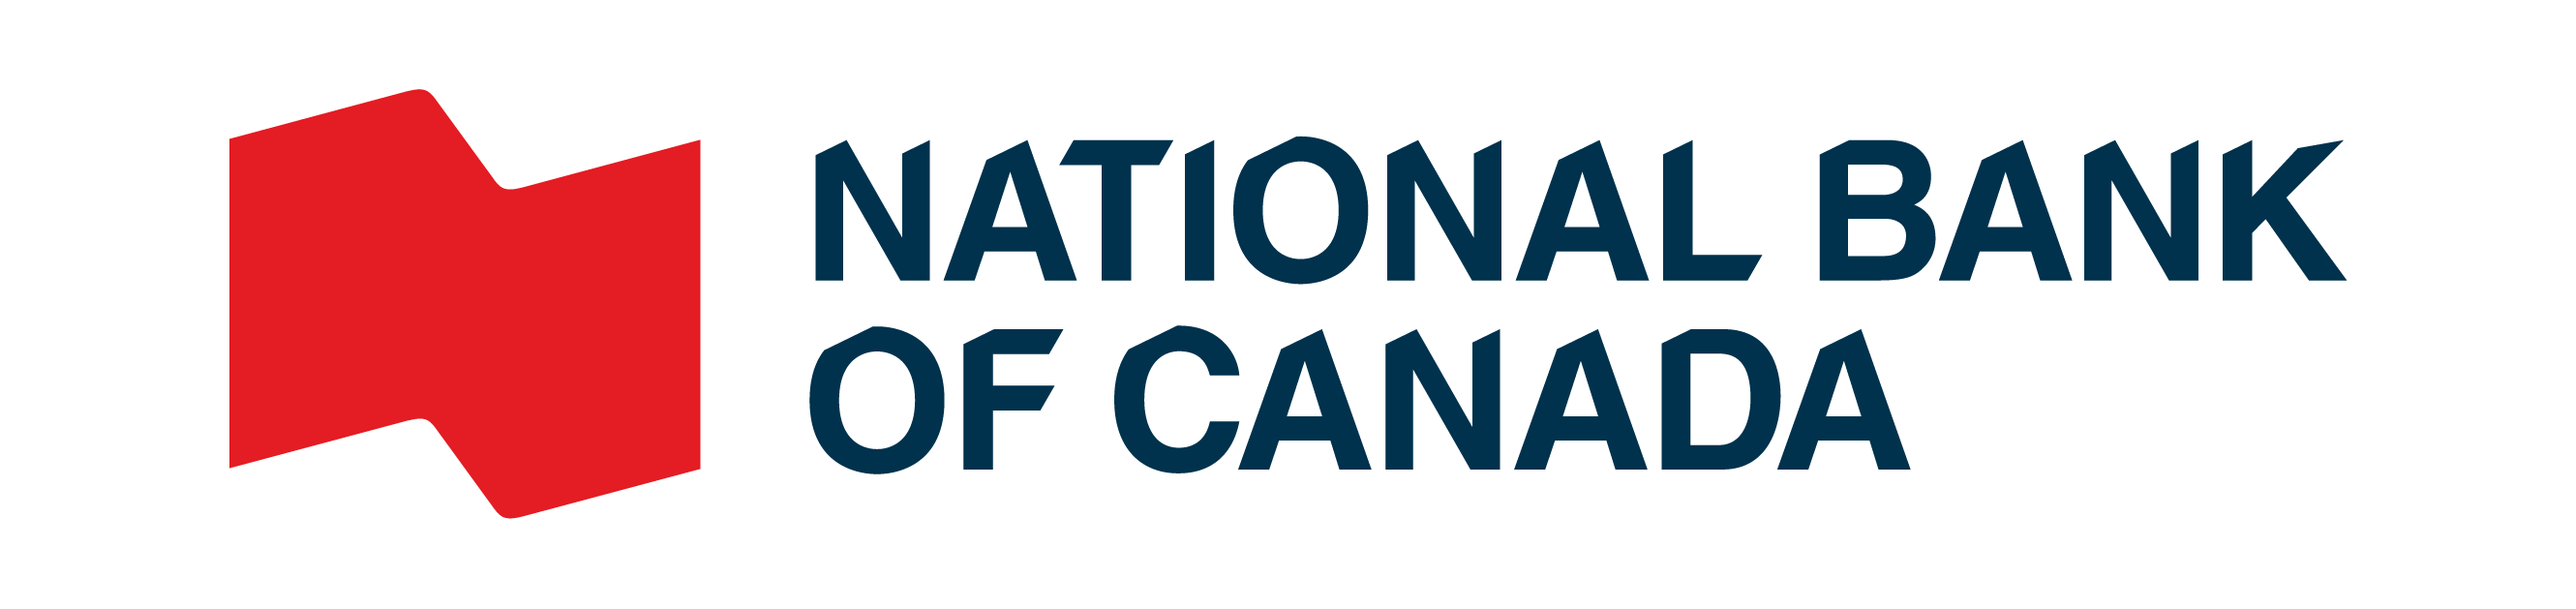 National Bank of Canada logo